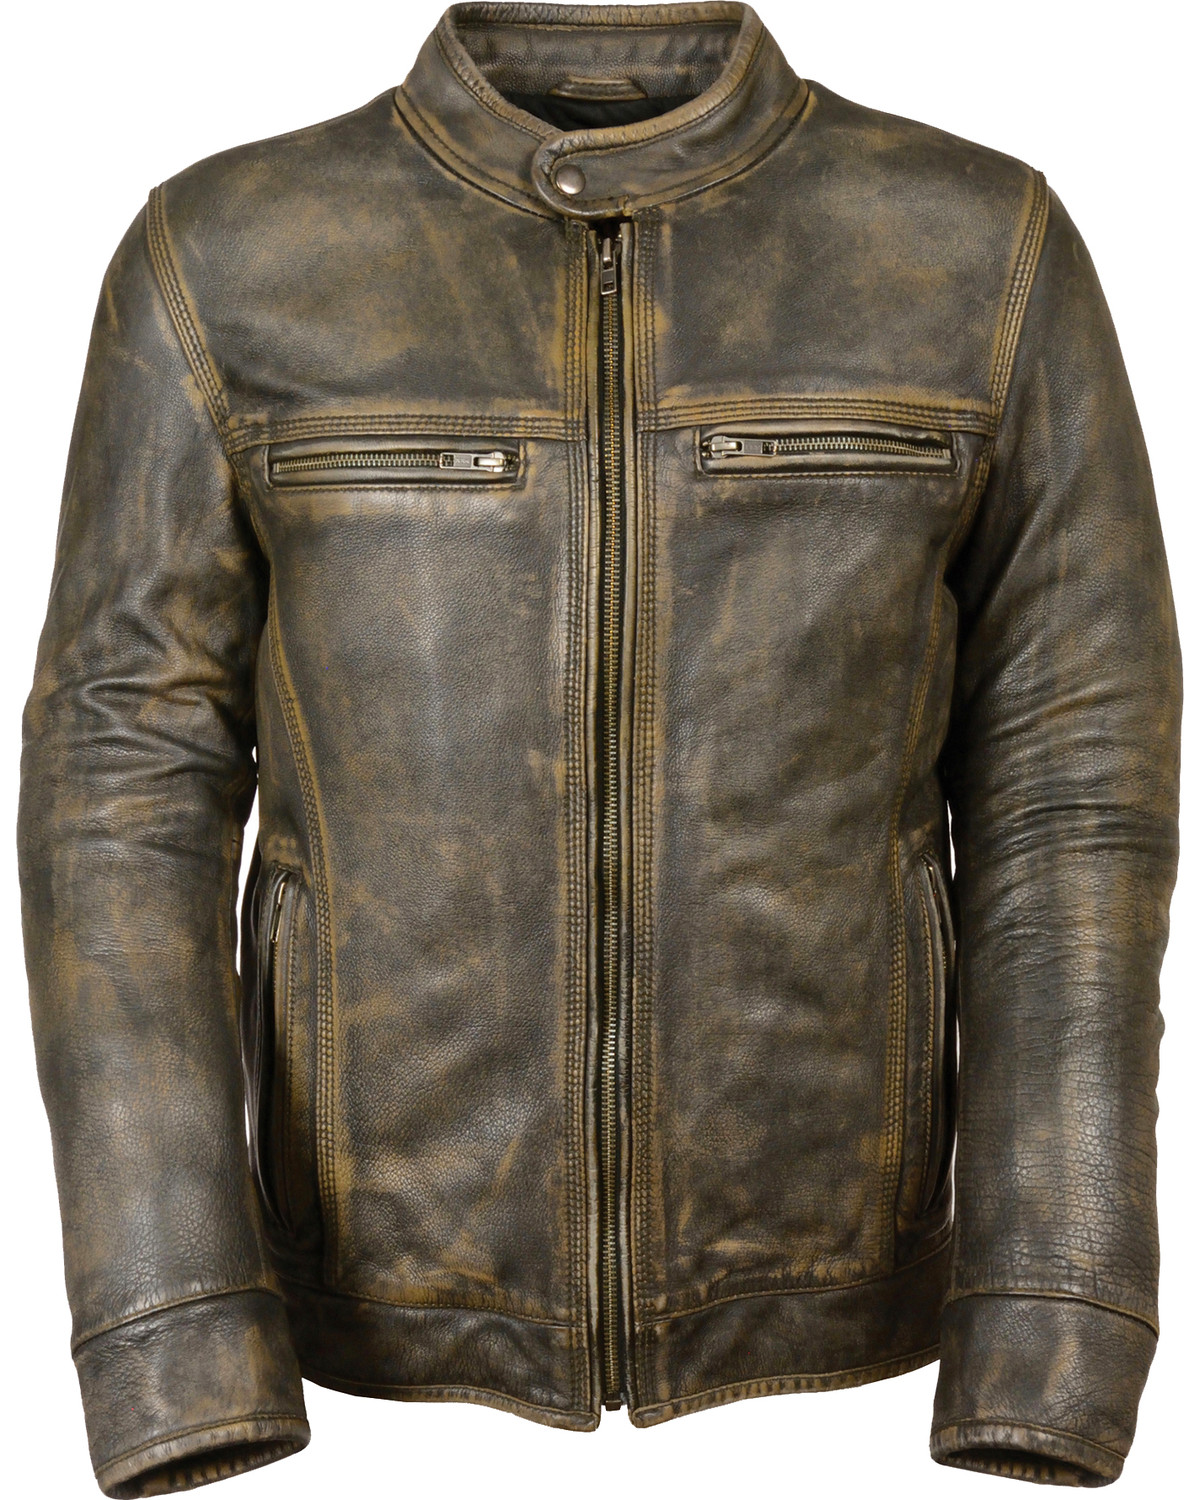 66791e2dee Zoomed Image Milwaukee Leather Men's Brown Distressed Scooter Jacket w/  Venting , Black/tan, hi